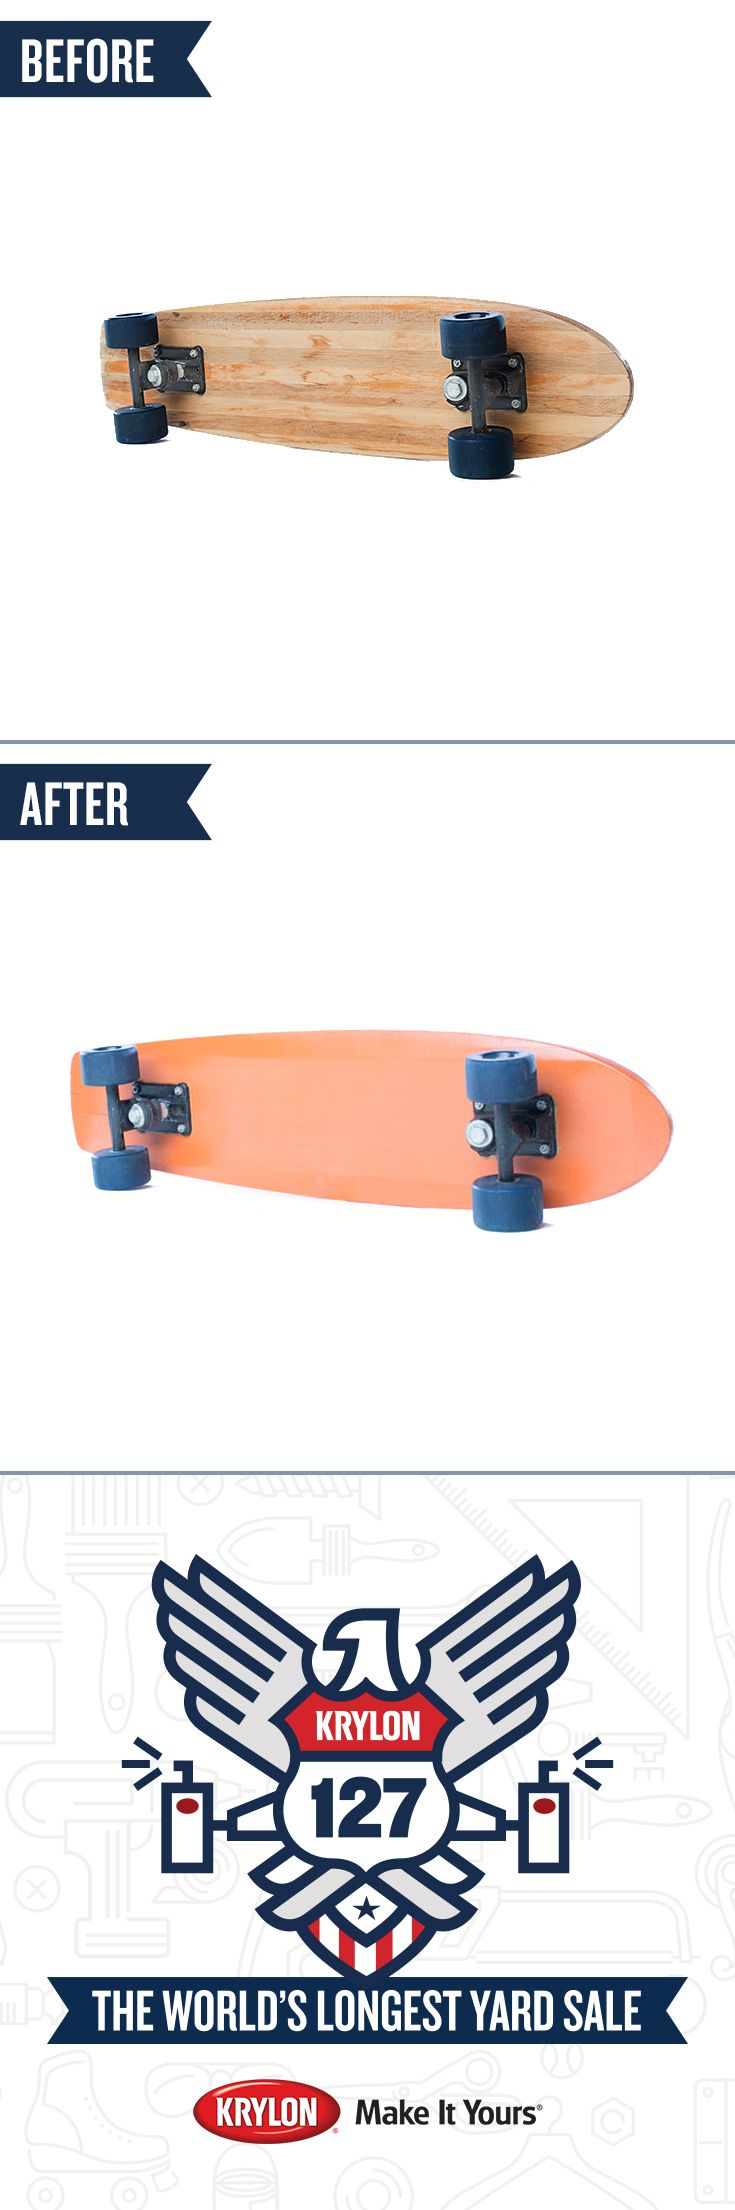 Sometimes a different color is all you need to ramp up your ride style.  Use Krylon ColorMaster Paint + Primer Pumpkin Orange  to give your wooden skateboard a new look. Now you're ready to hit the streets, or the half pipe. Let the makeovers from the #Krylon127YardSale inspire you to transform your favorite yard sale finds into treasures.